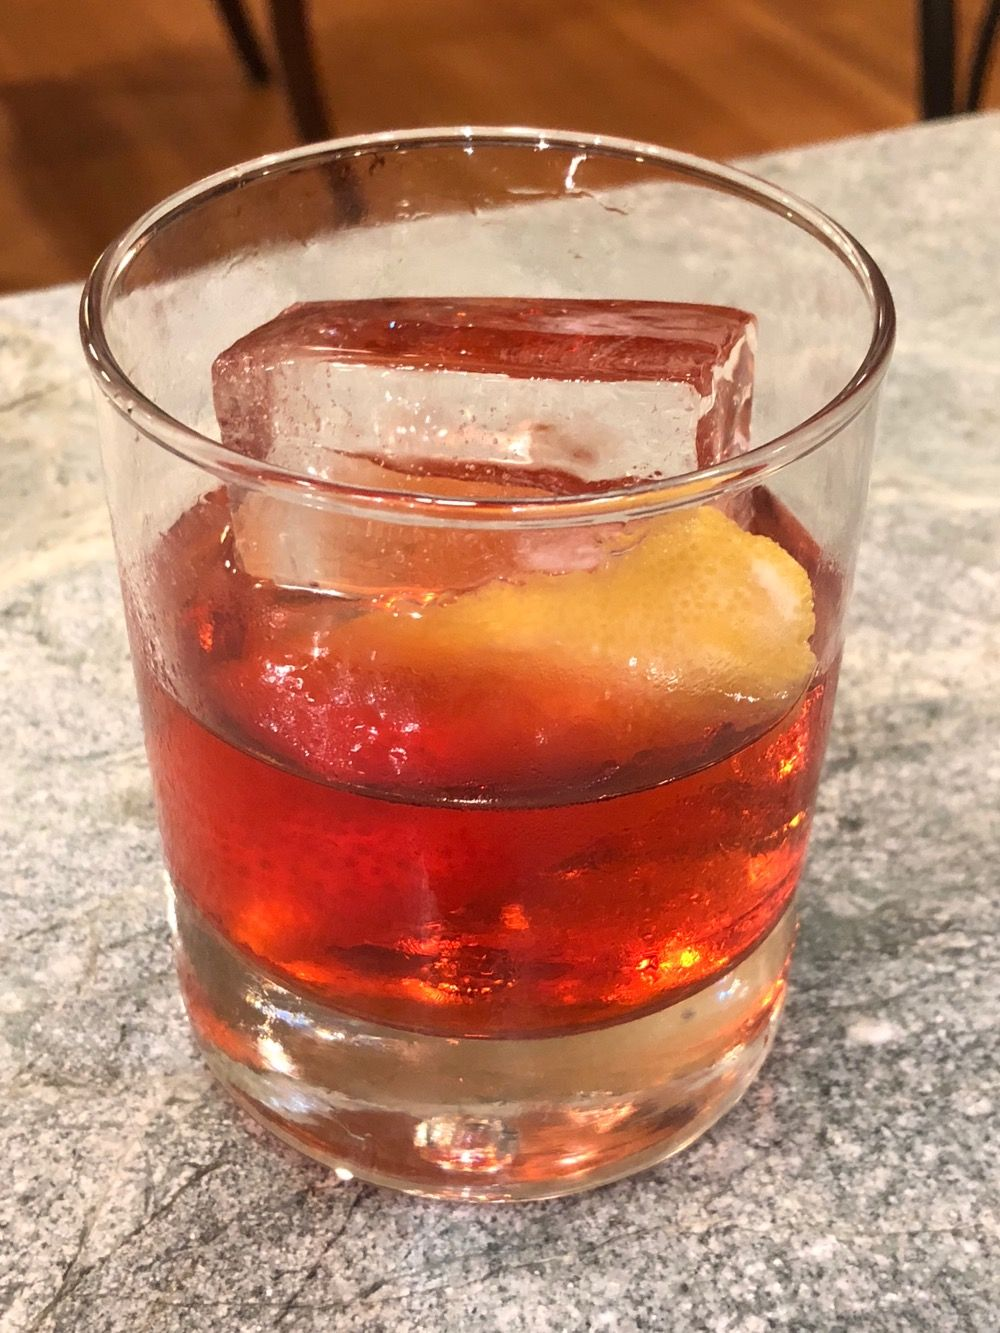 Negroni with sherry vermouth and hand-cut ice.